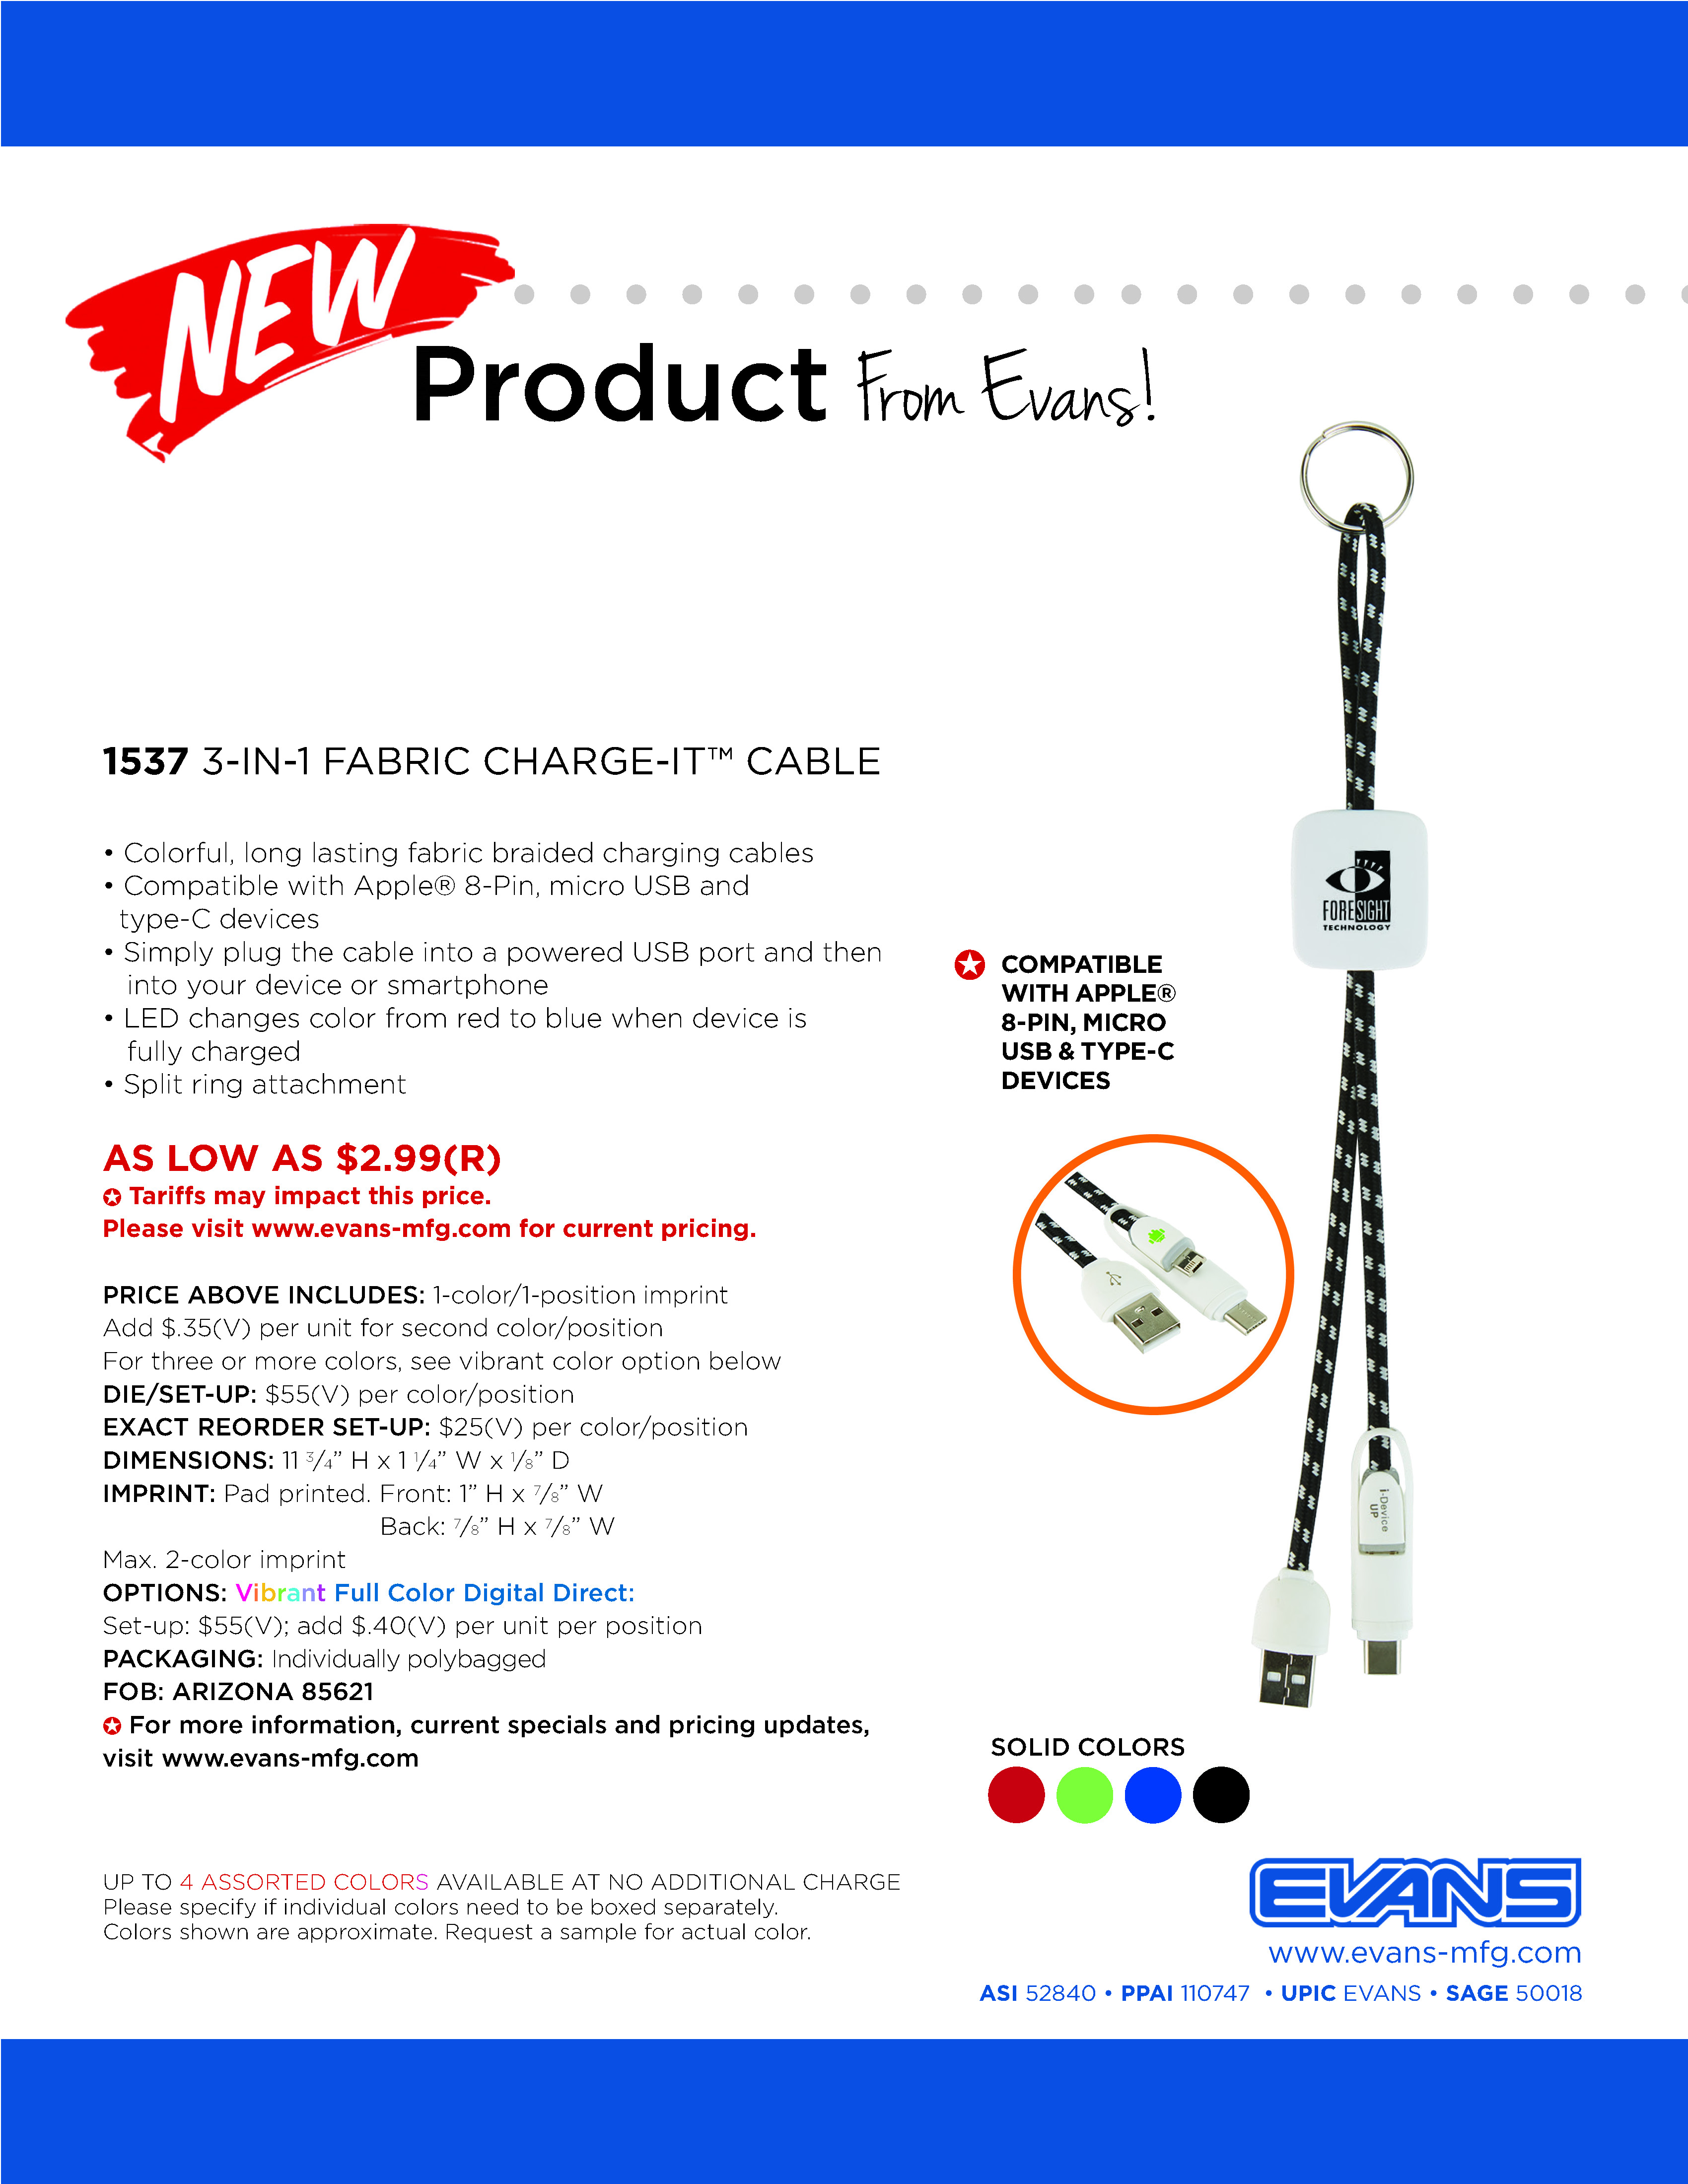 1537 3-in-1 Fabric Charge-It™ Cable